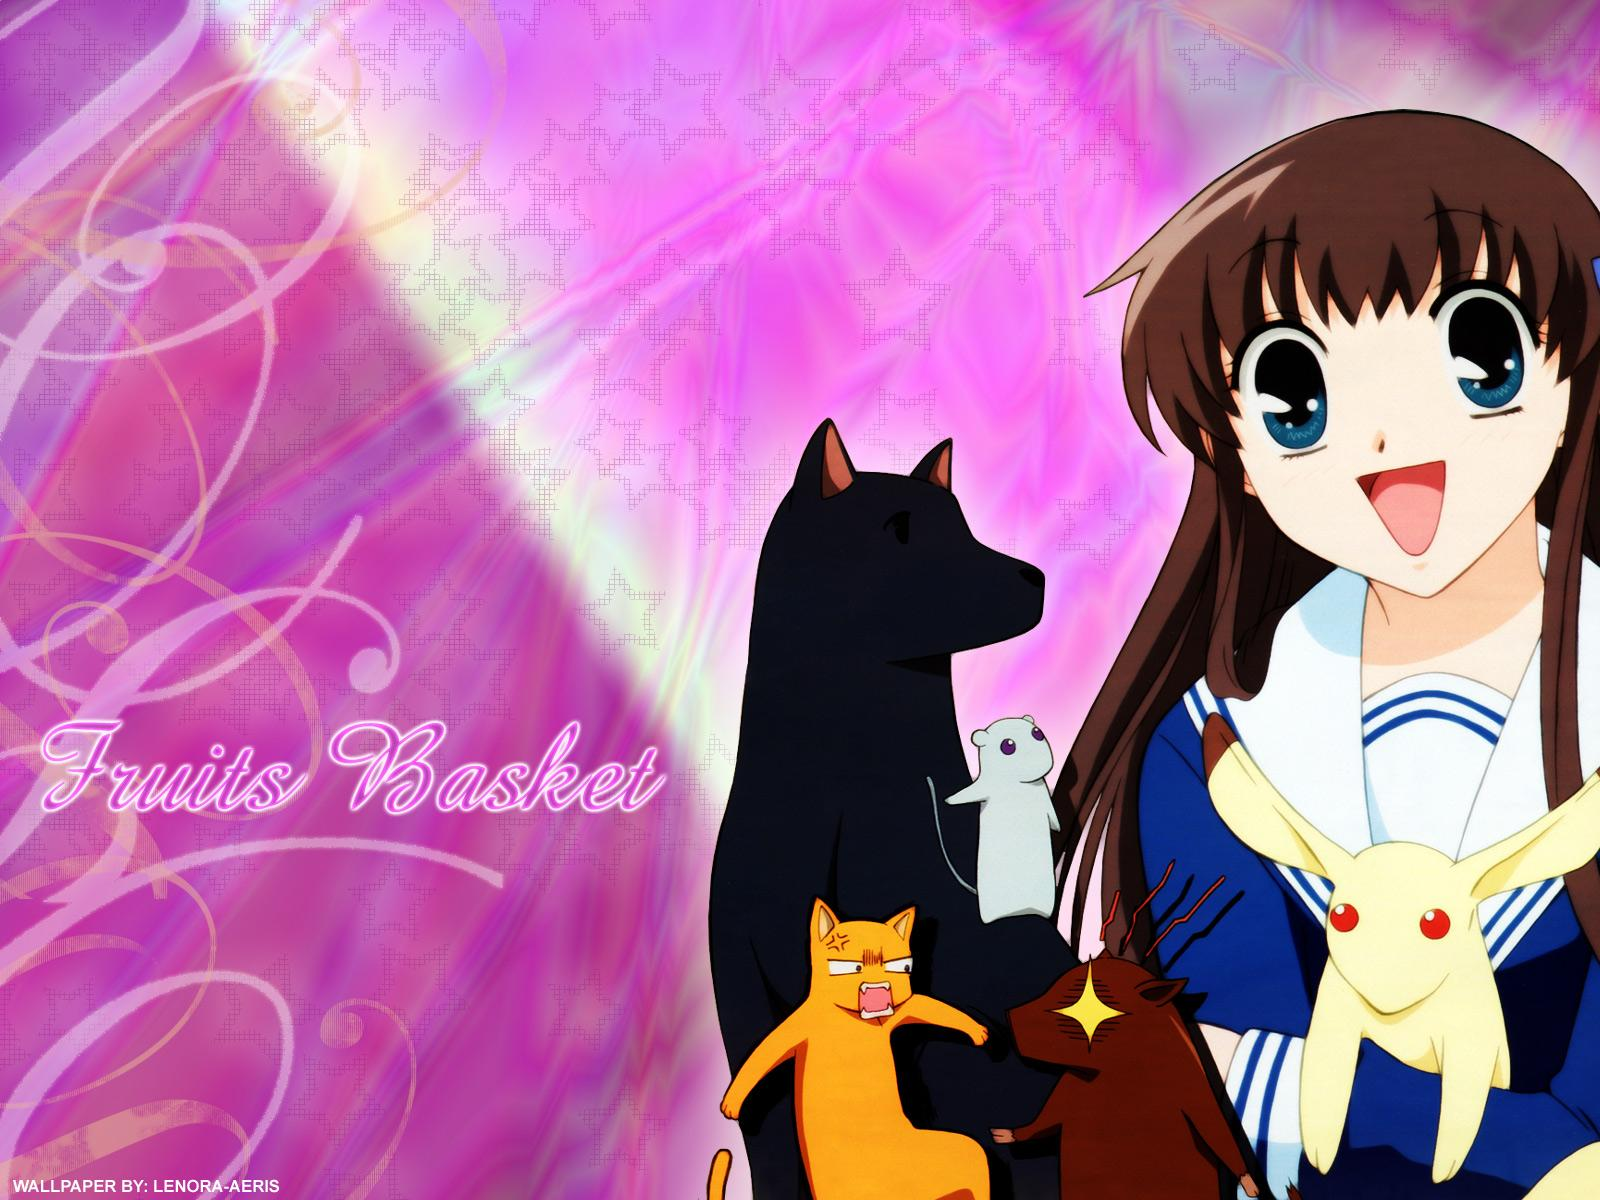 Fruits Basket Wallpapers 1600x1200,